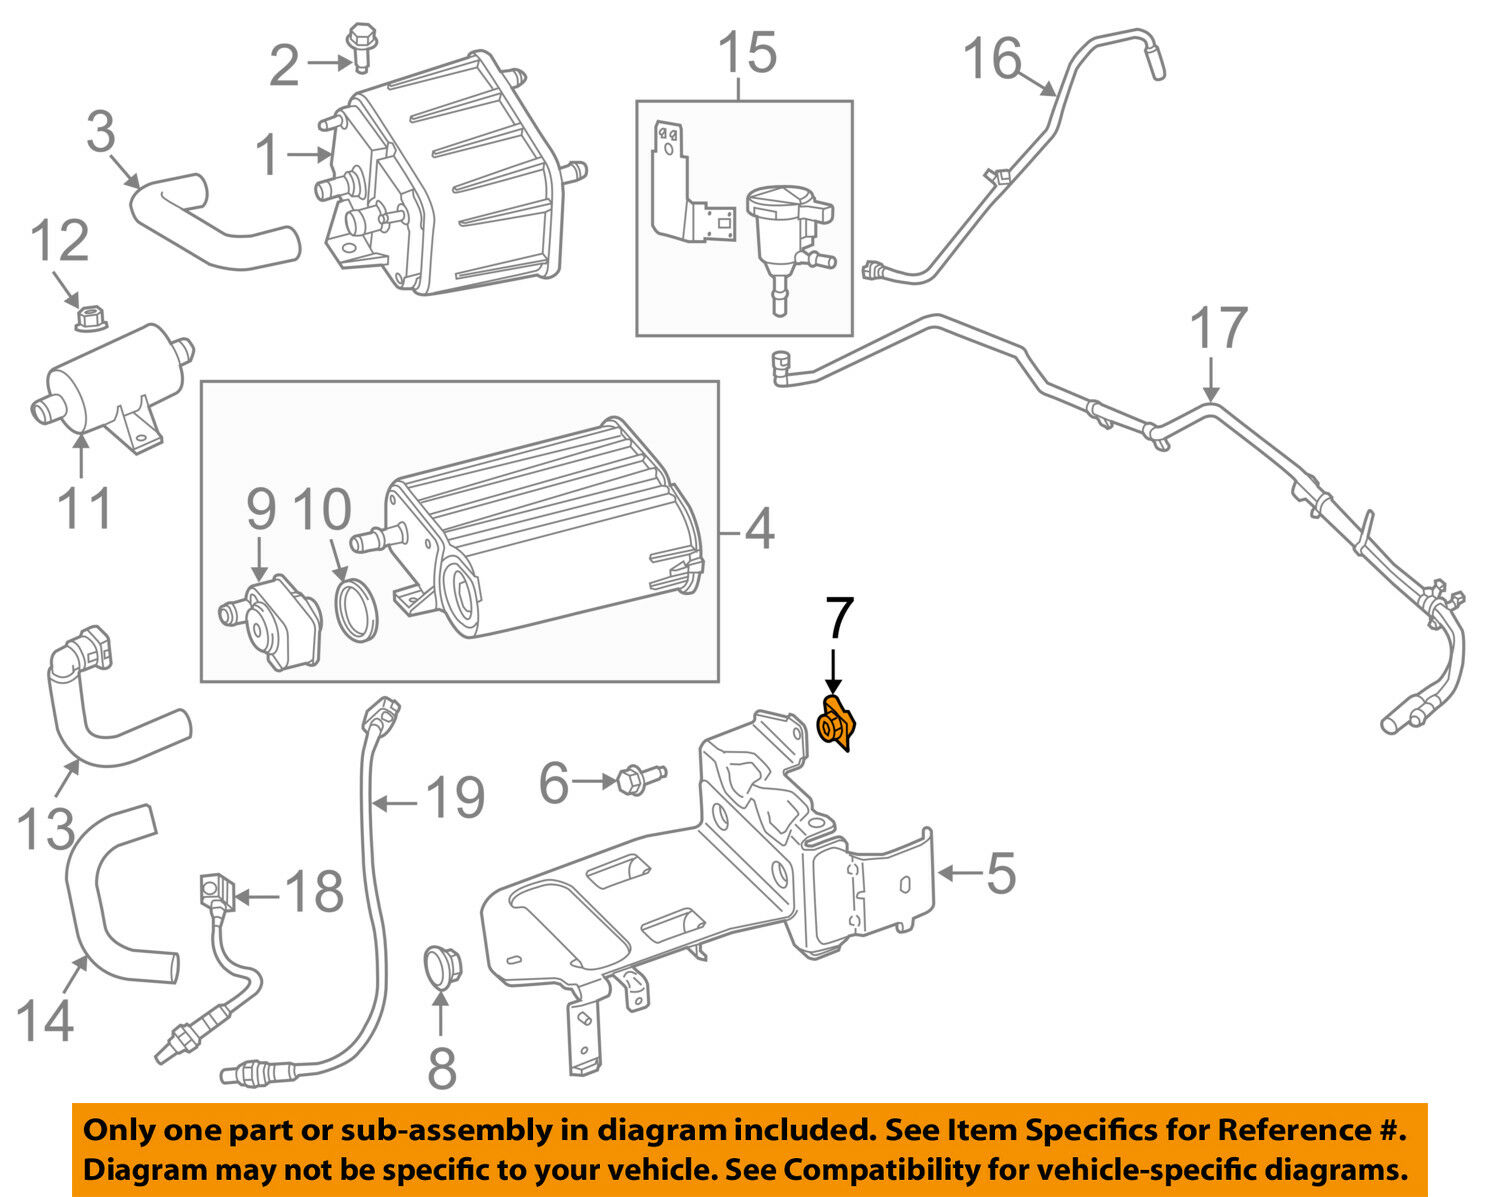 Mad Mopar Engine Diagram Best Site Wiring Harness 1946 DeSoto 1948 Desoto  Wiring Diagram